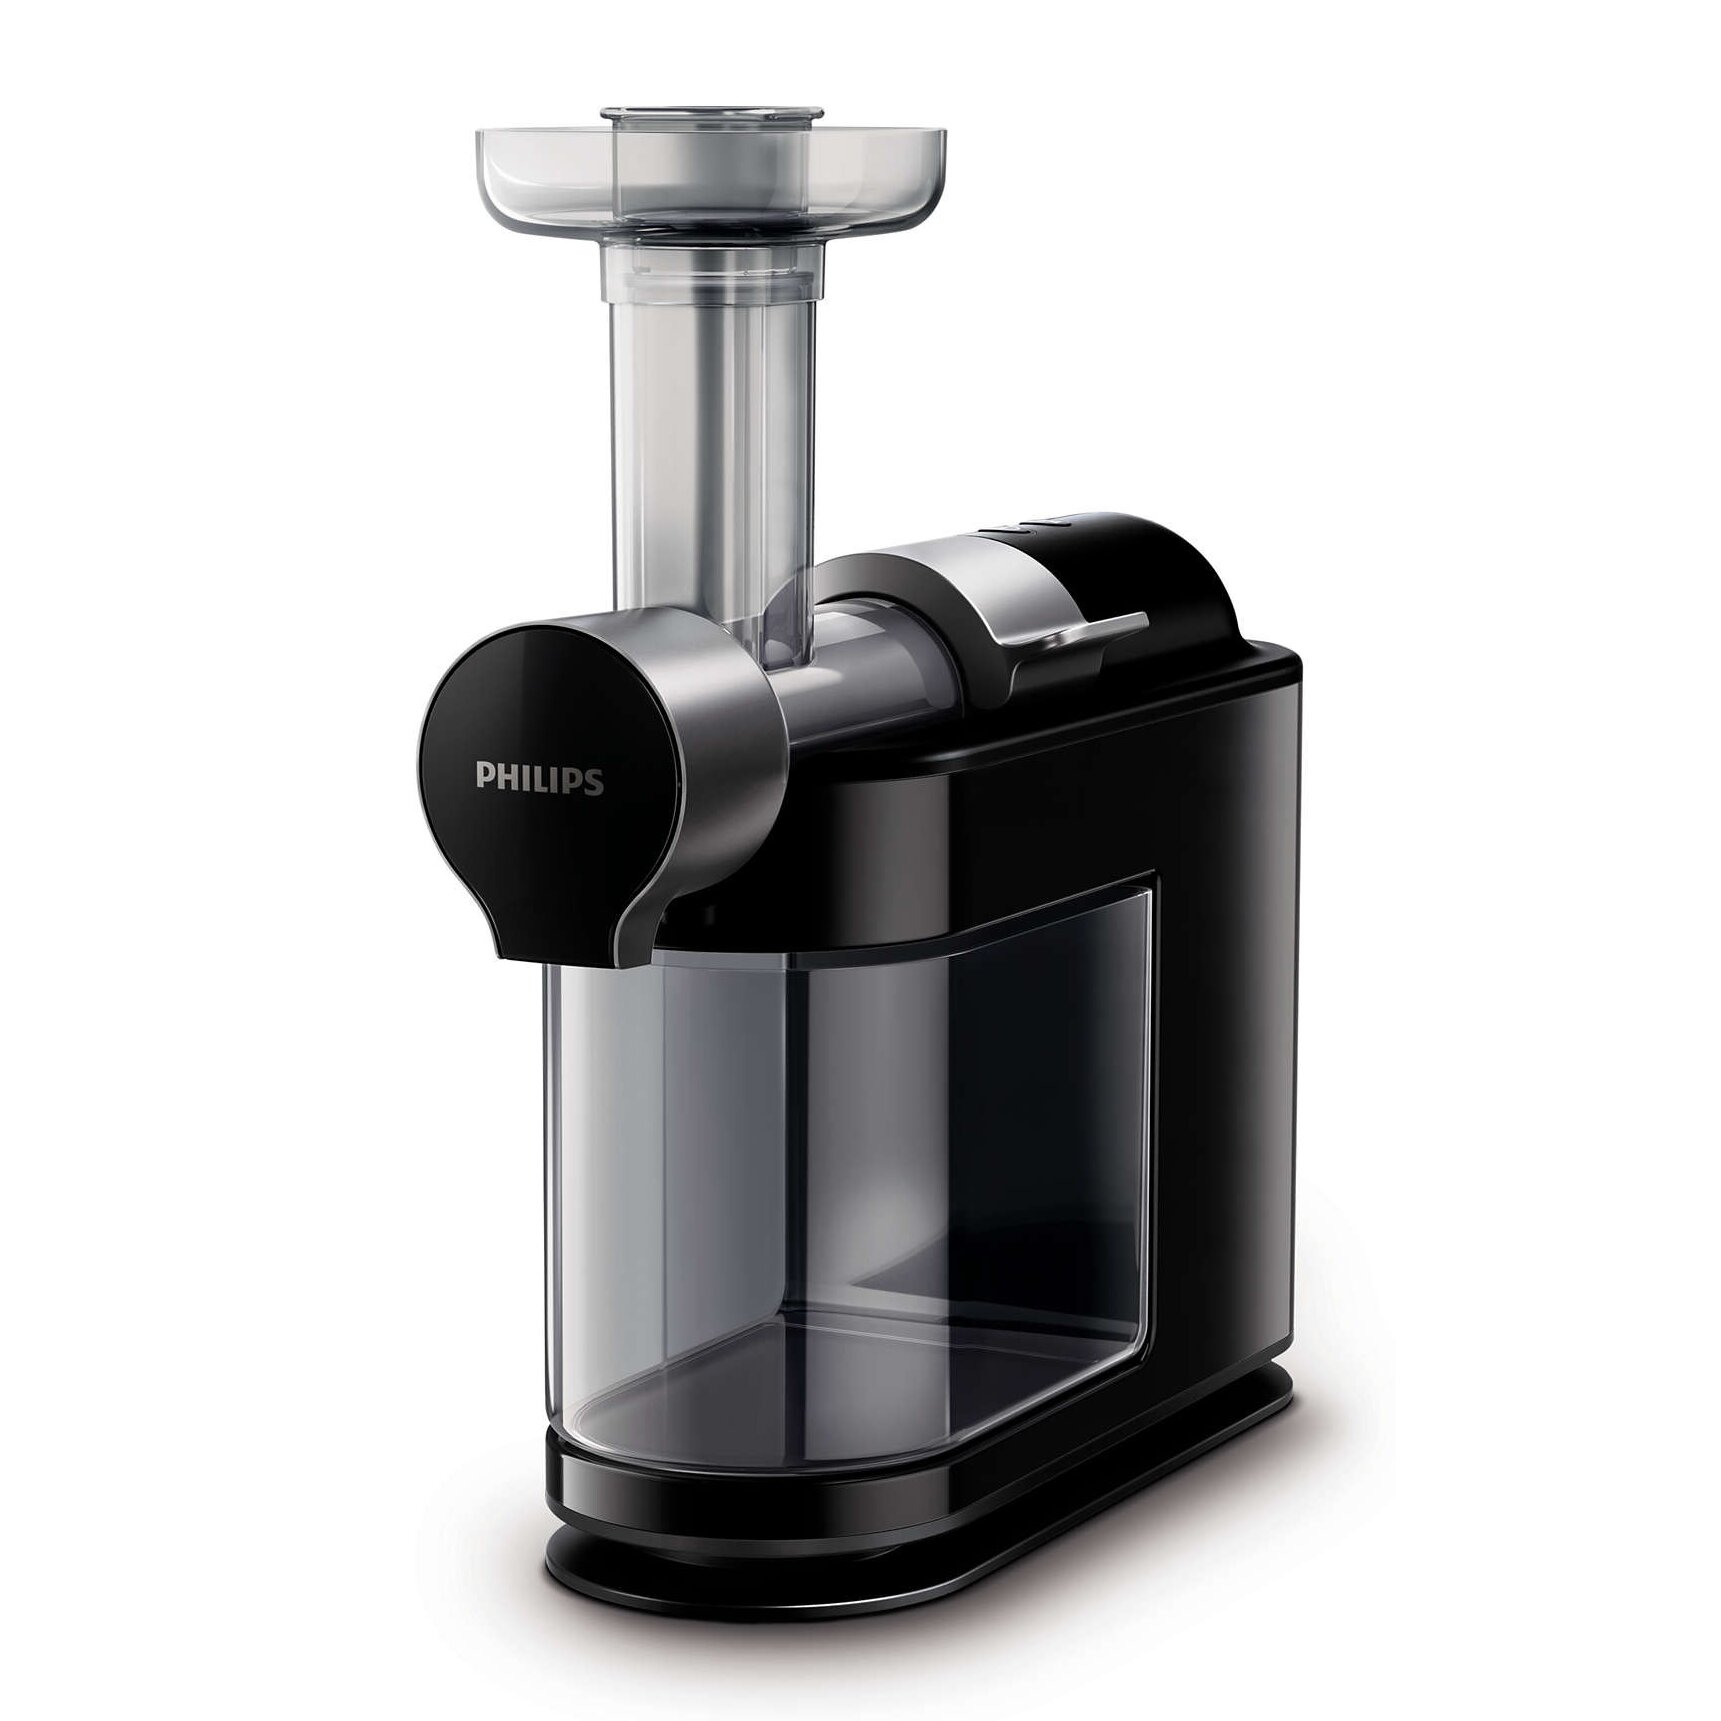 Philips Micro Slow Juicer : Philips Micro Masticating Juicer & Reviews Wayfair